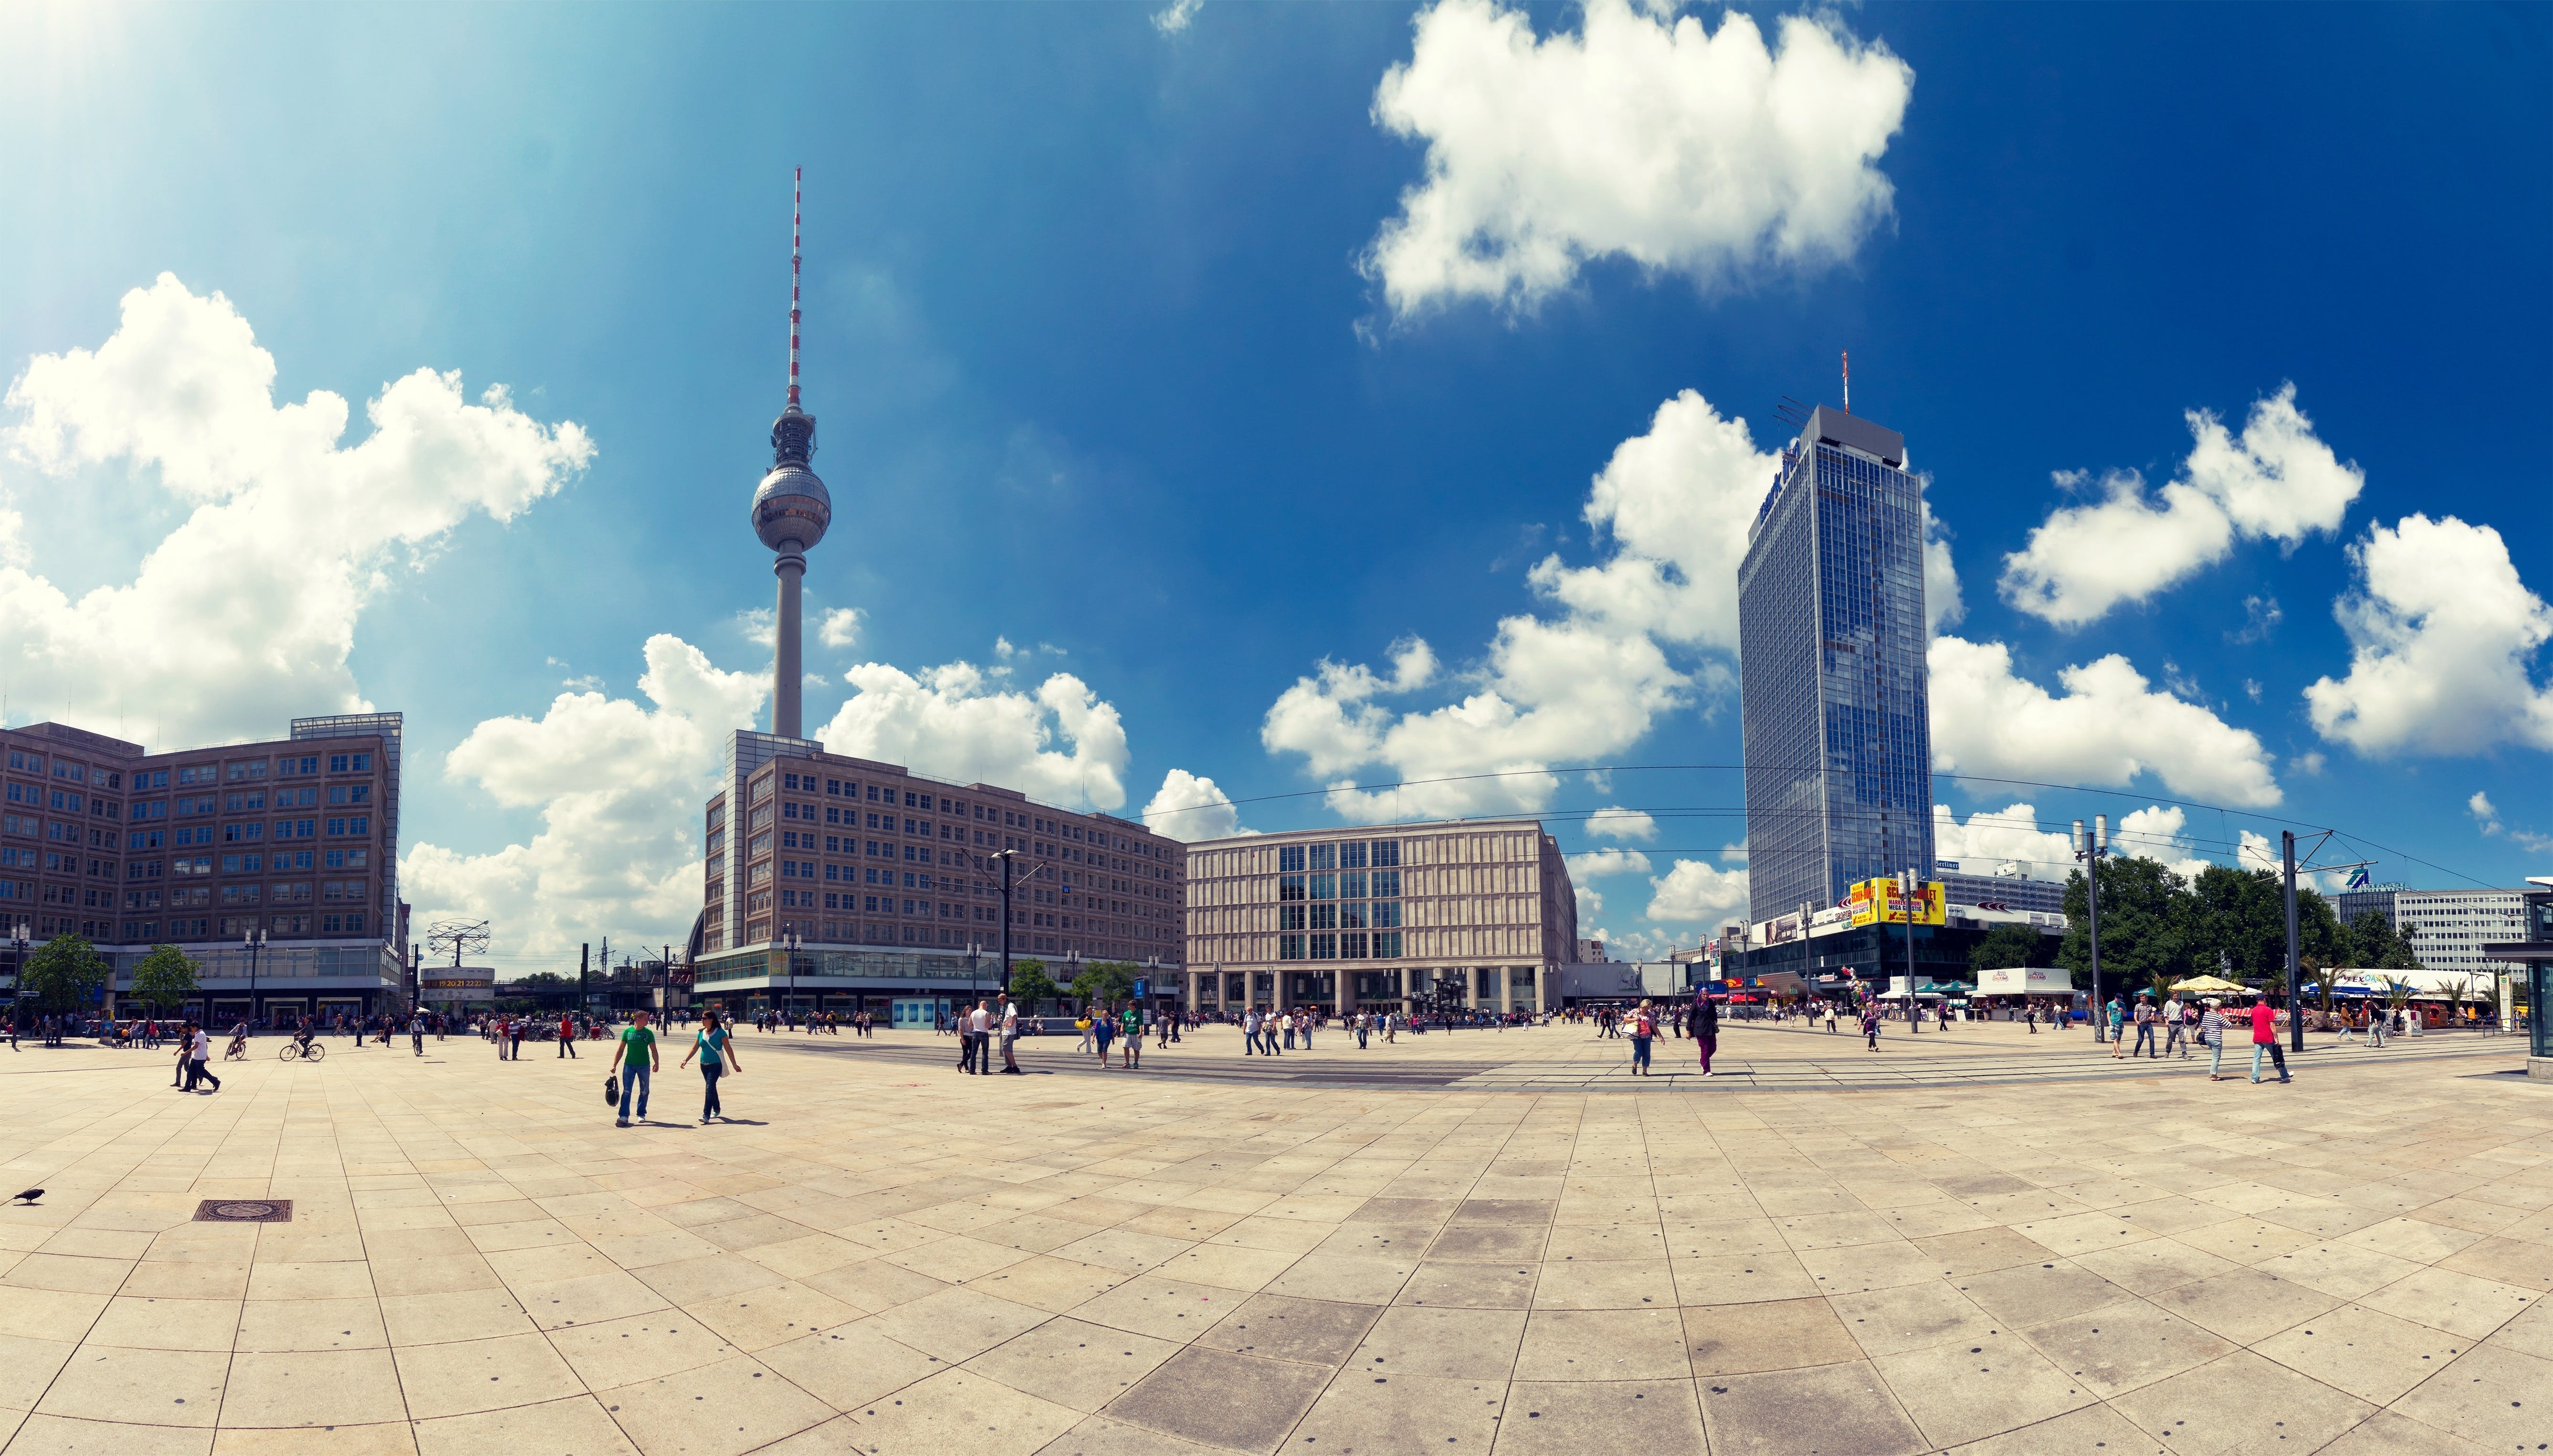 Berlin Wall and the Cold War - a tour of East Berlin